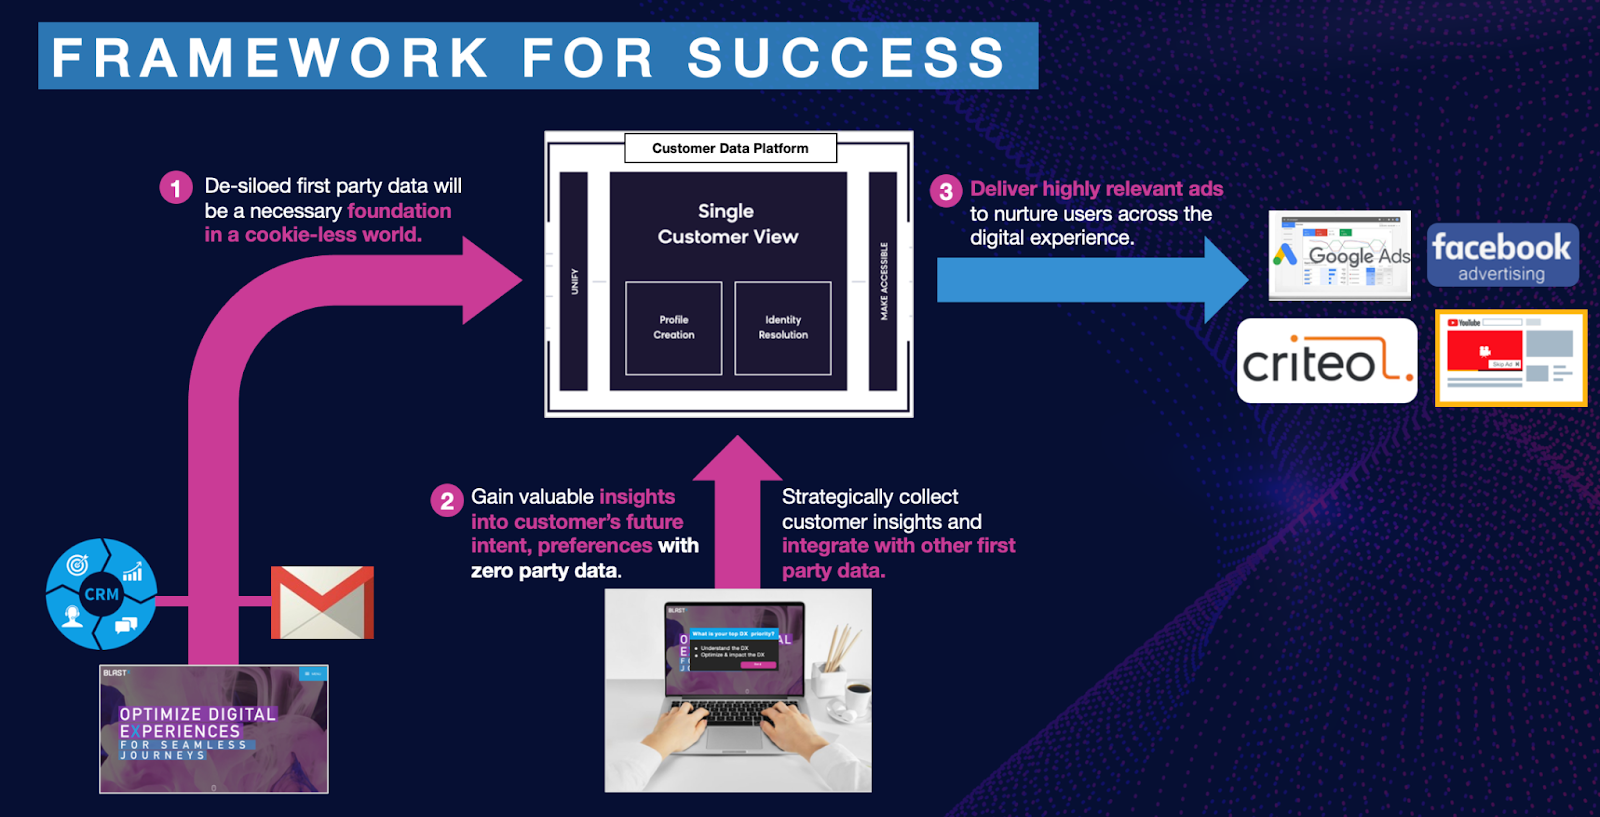 framework for success diagram of first-party and zero-party data strategy